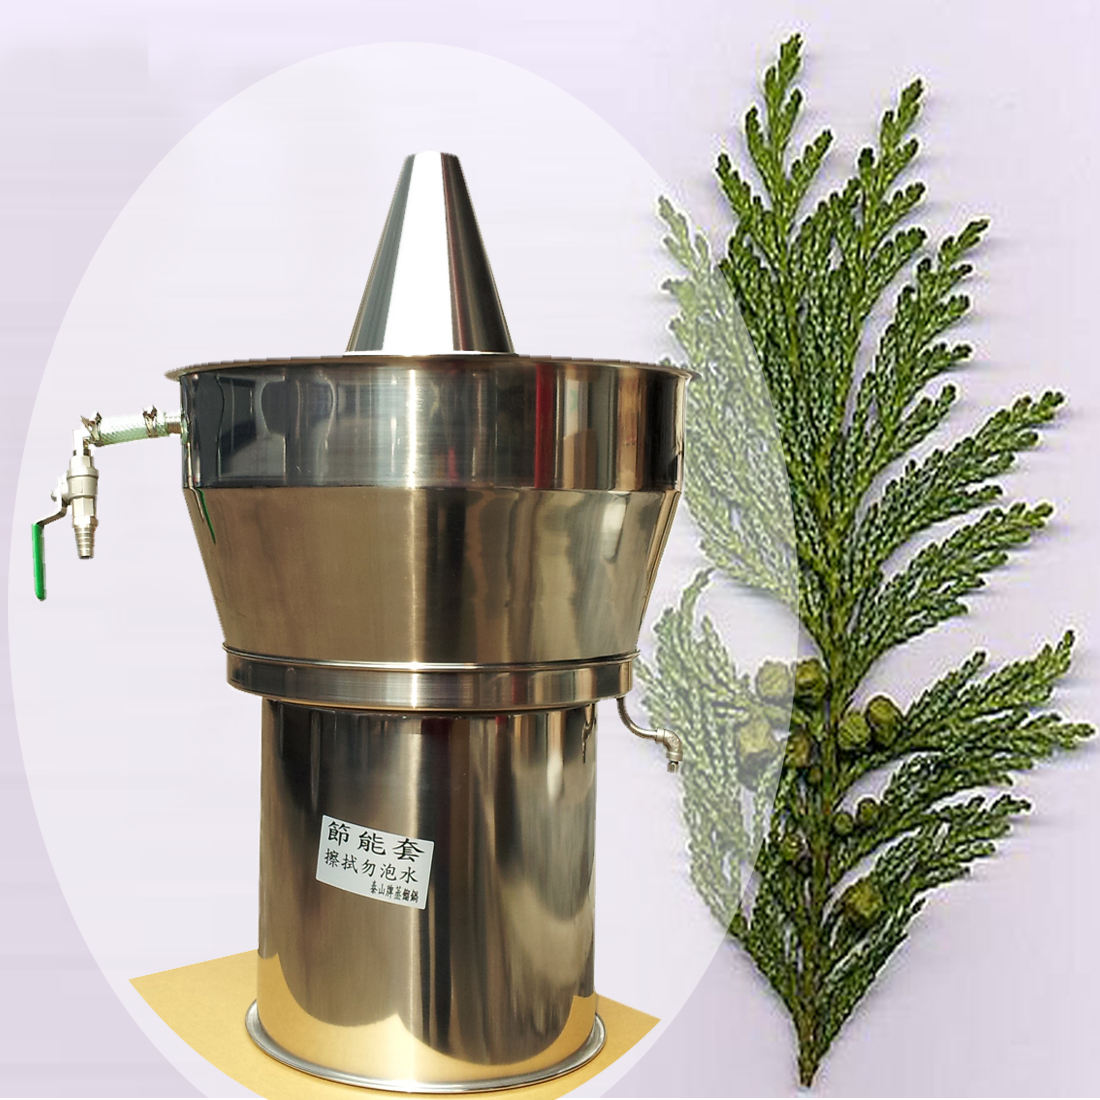 10L curry leaves oil extraction equipment from Chinese supplier